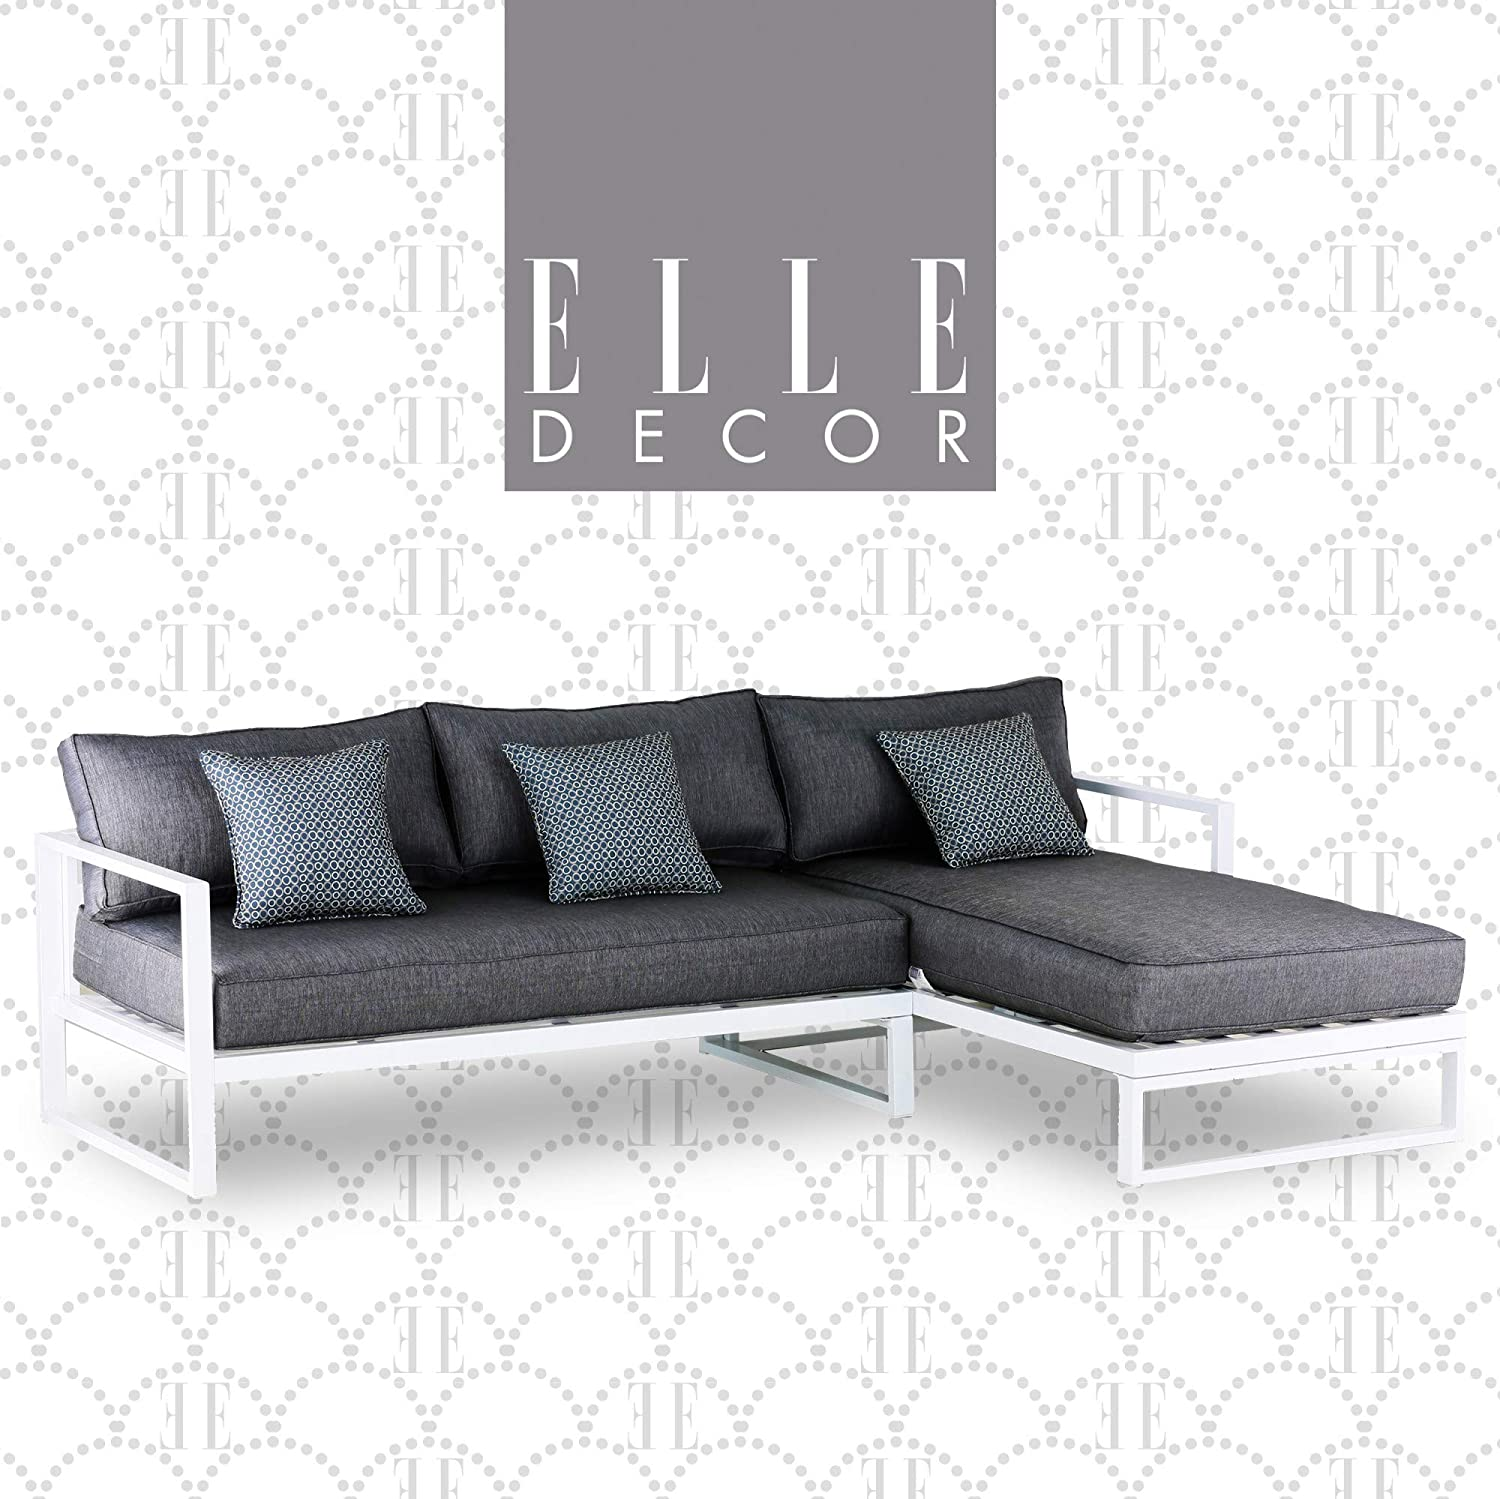 Elle Decor Paloma Outdoor Patio Furniture Collection in Weather-Resistant Metal Frame Patio Sectional, White